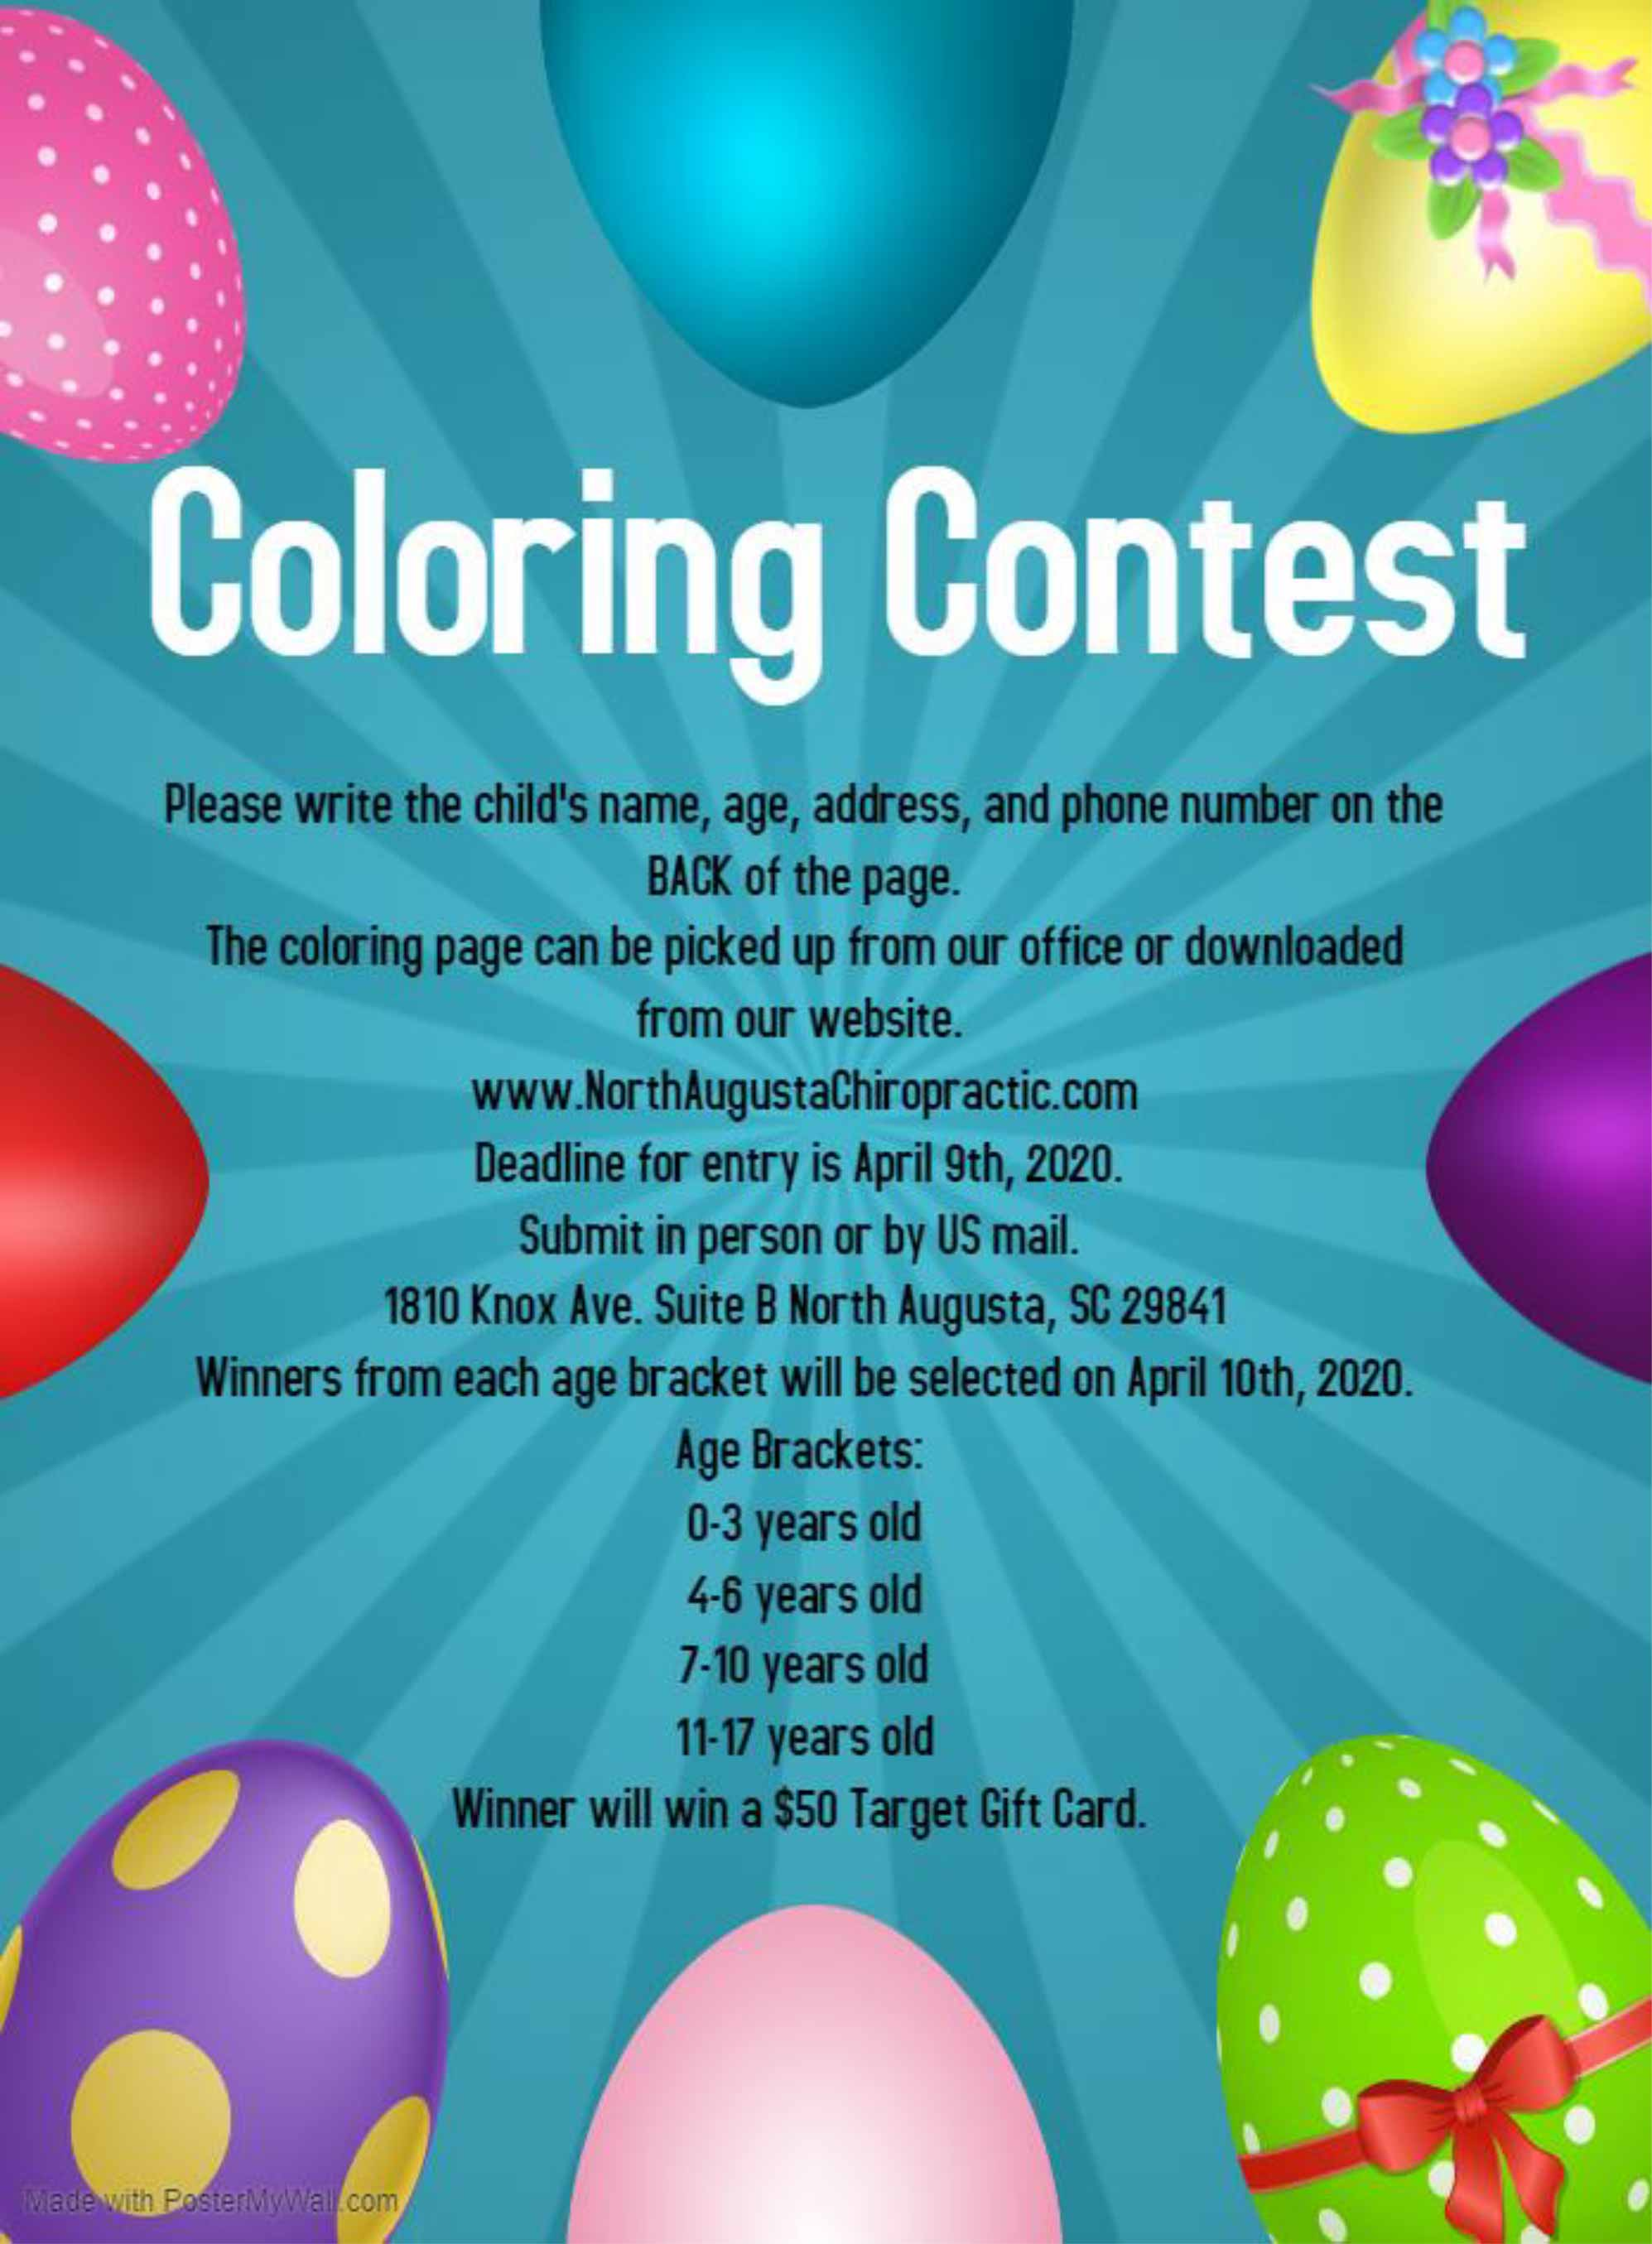 north augusta chiropractic Coloring Contest Flyer march 2020